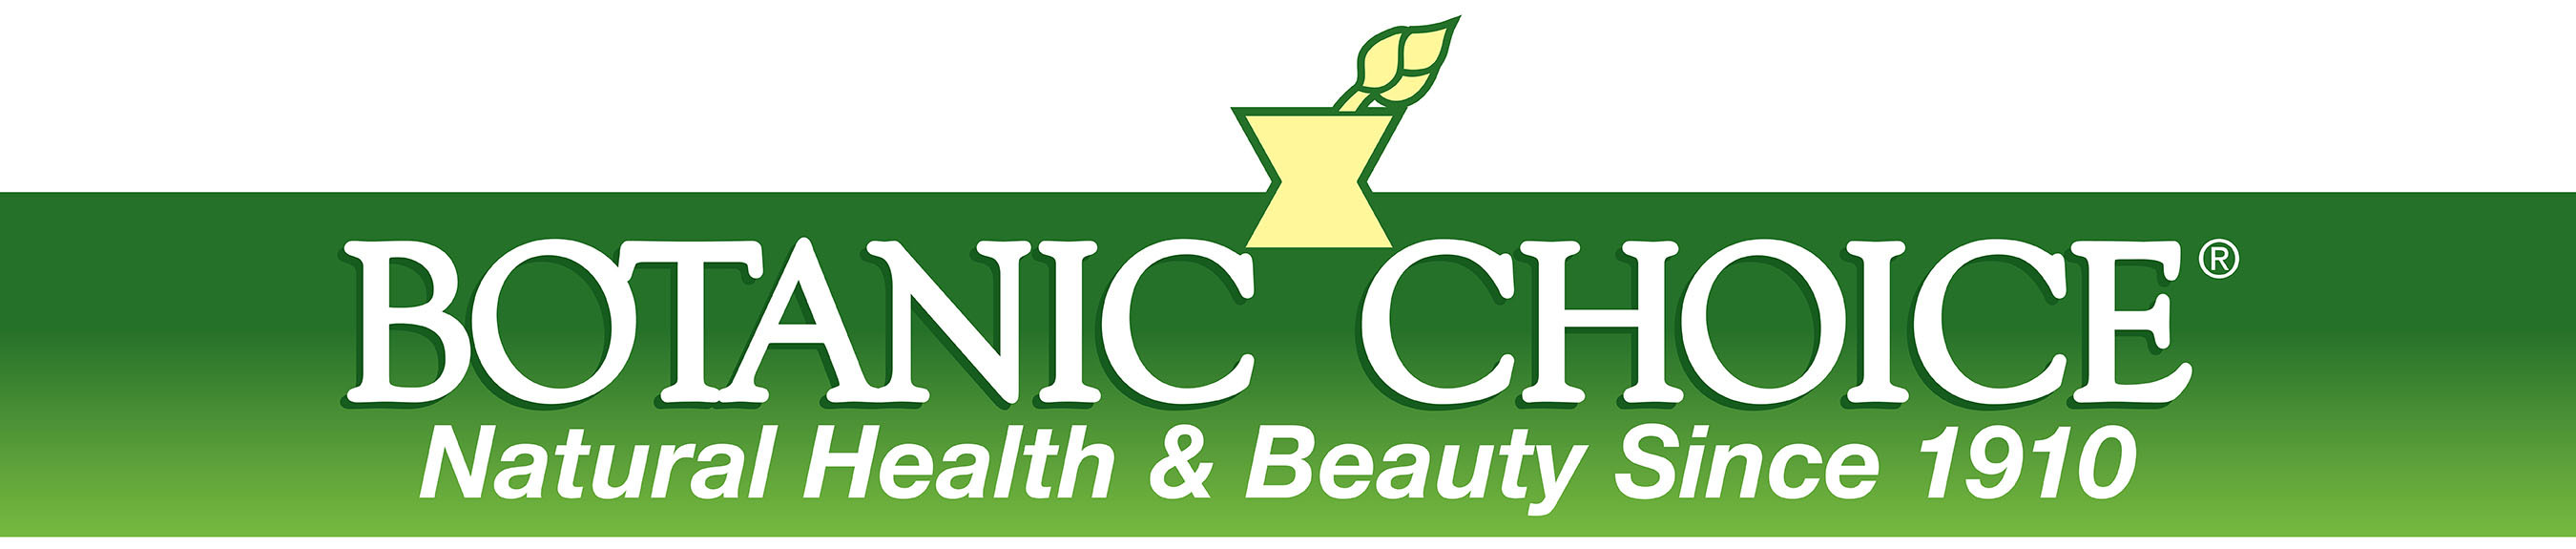 Check out our website at Botanic Choice where we offer natural herbal remedies.